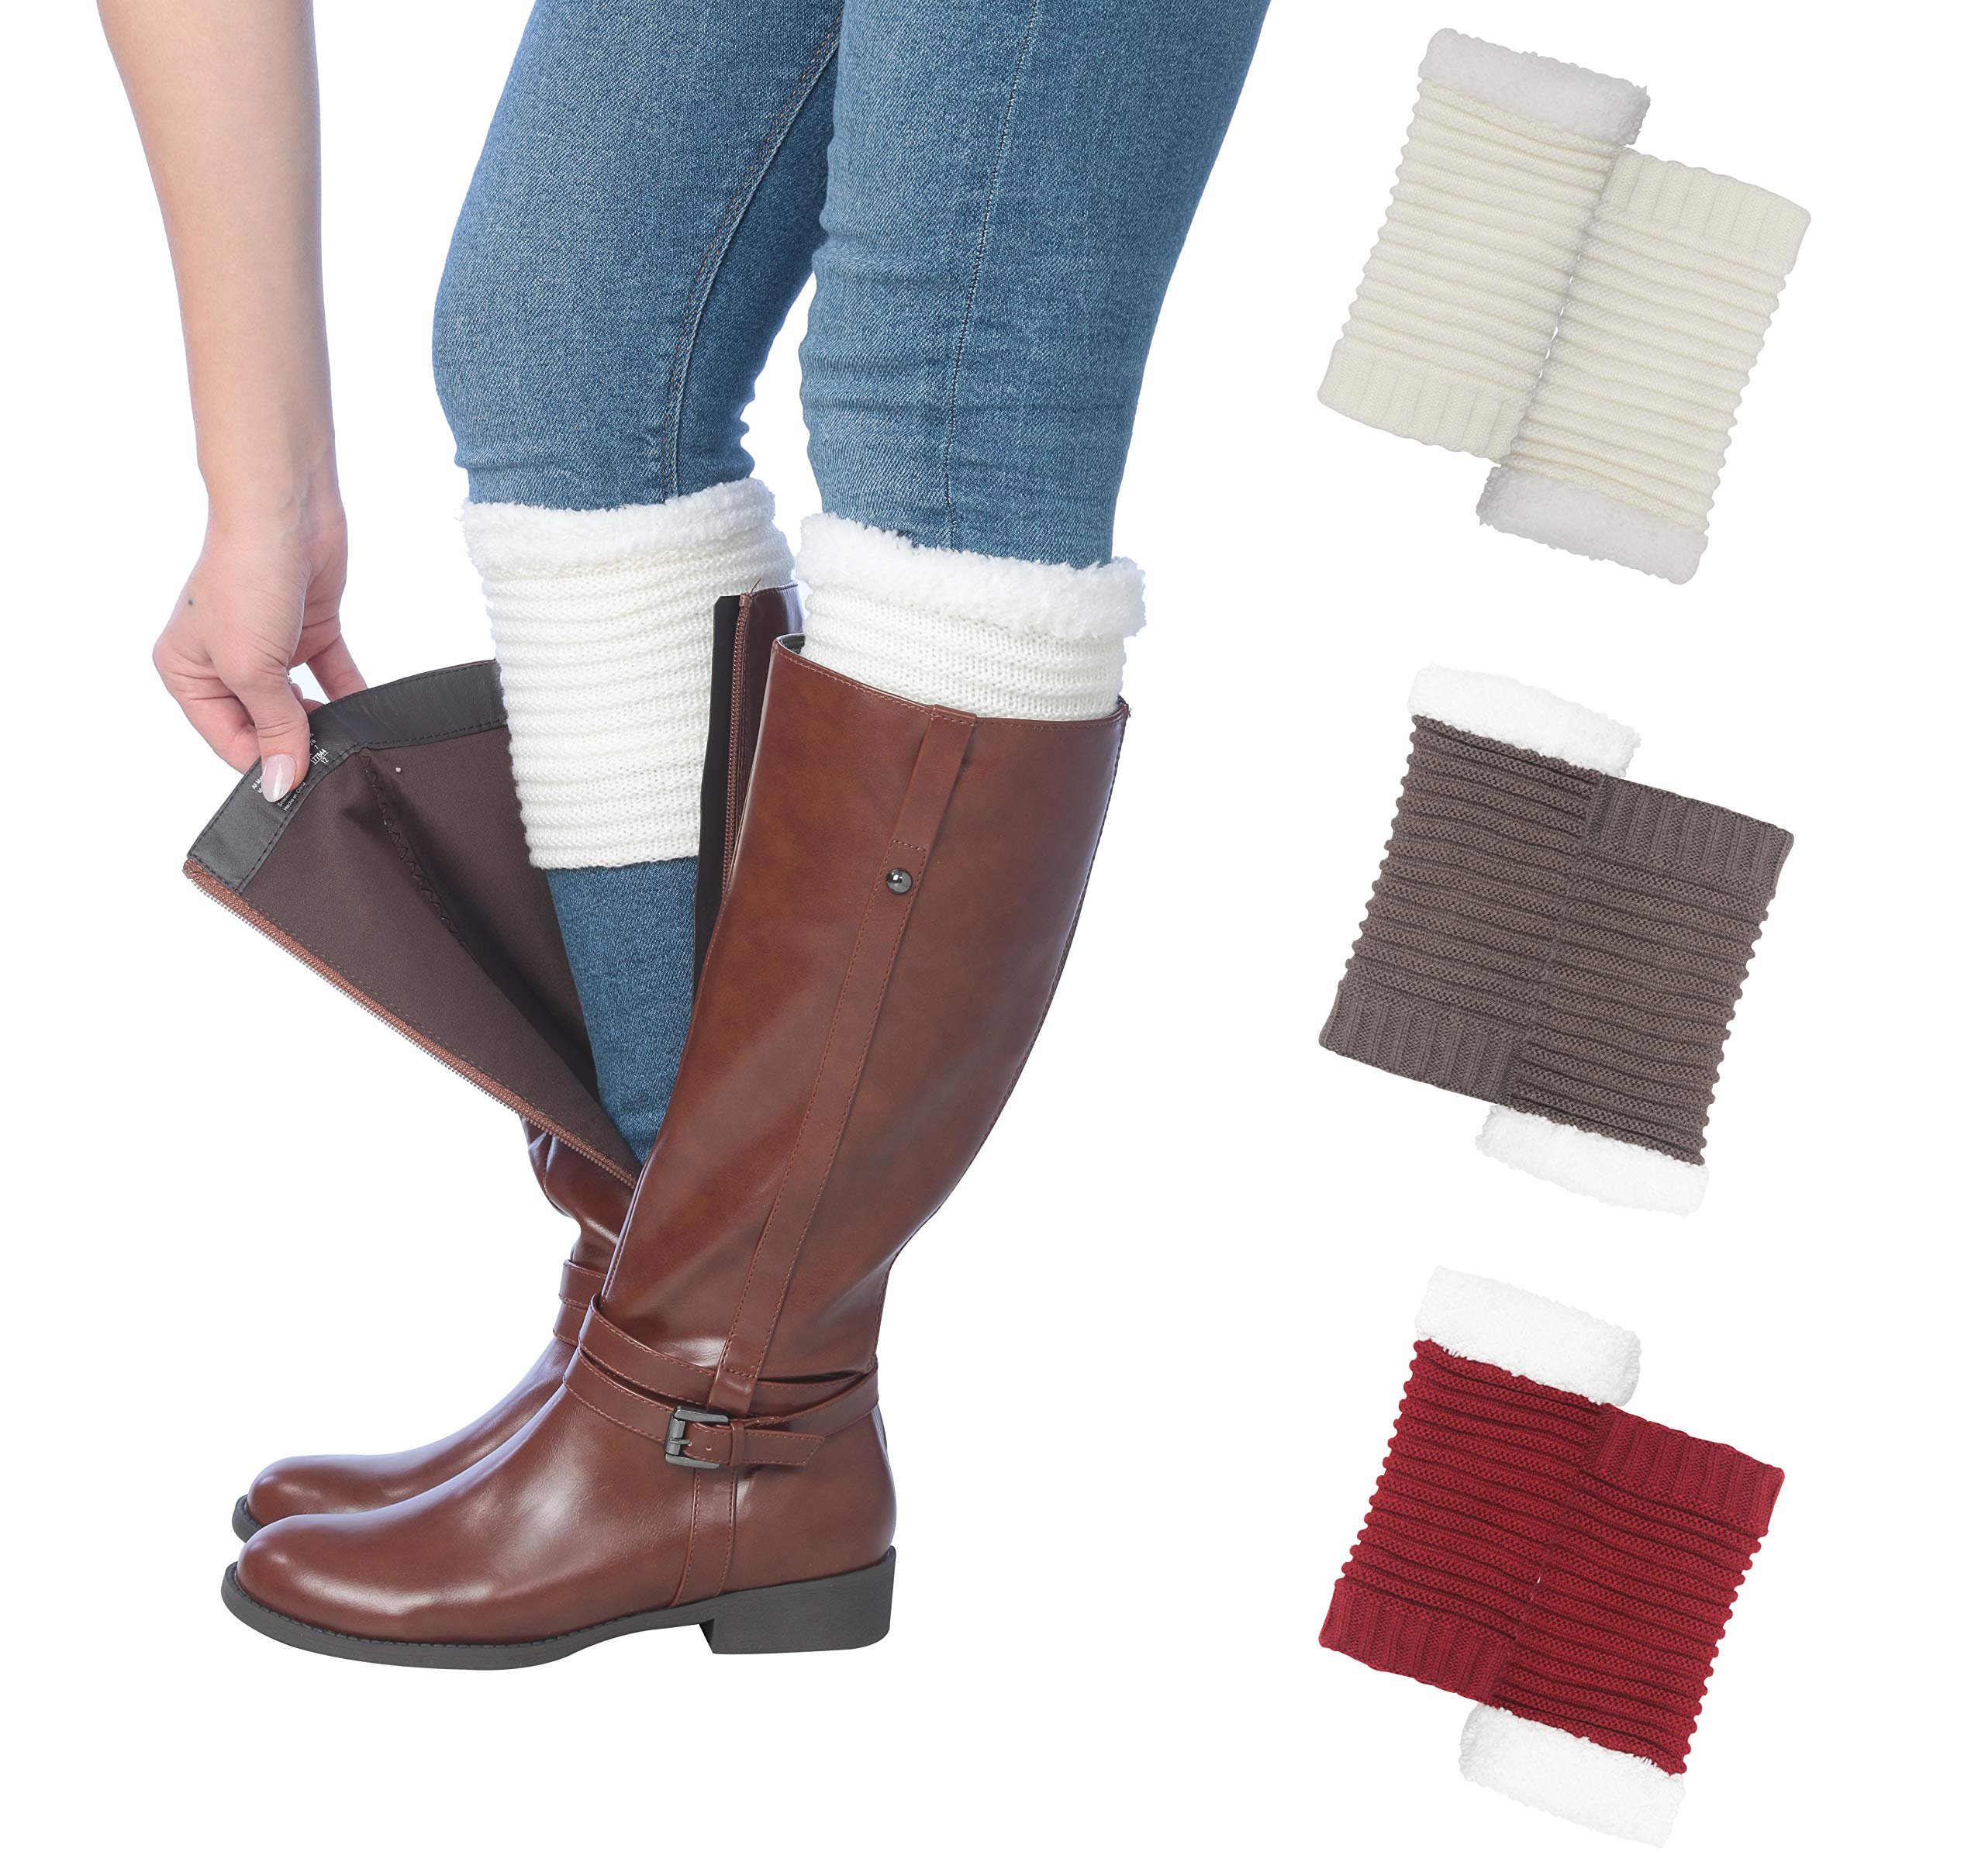 Tipi Toe Women's 3 Pairs Knitted Leg Warmer Boot Cuffs With Fleece Fuzzy Lining, One Size, BT1703